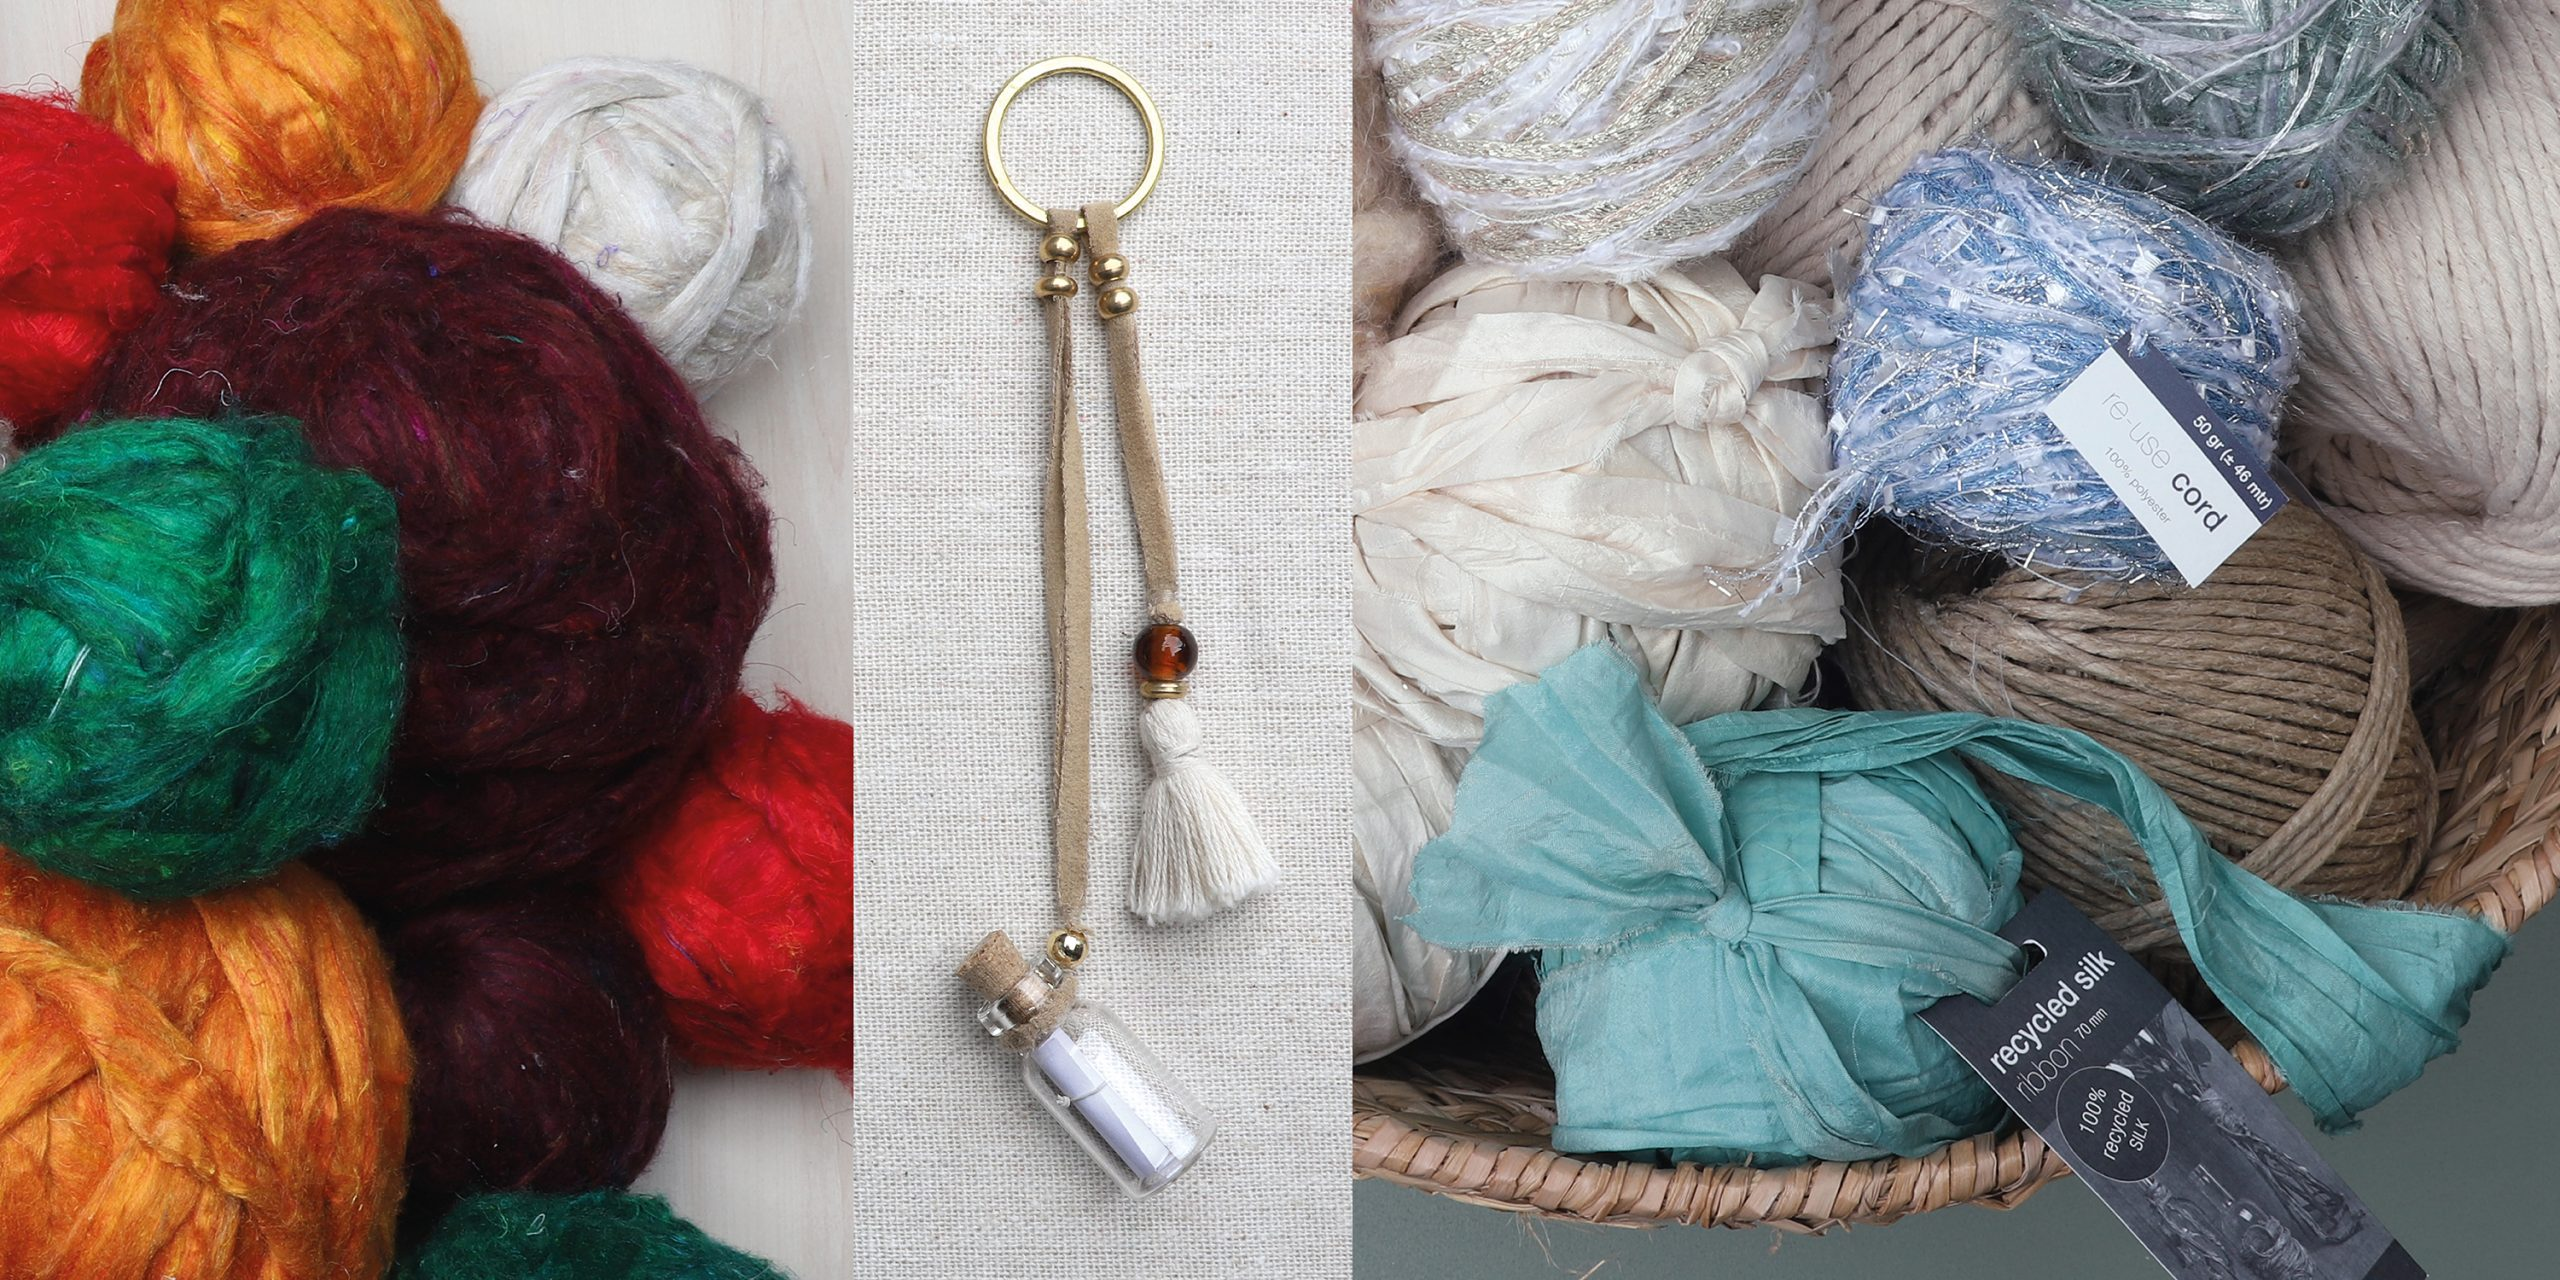 Recycled silk fiber balls, Wish bottle and Re-use cord